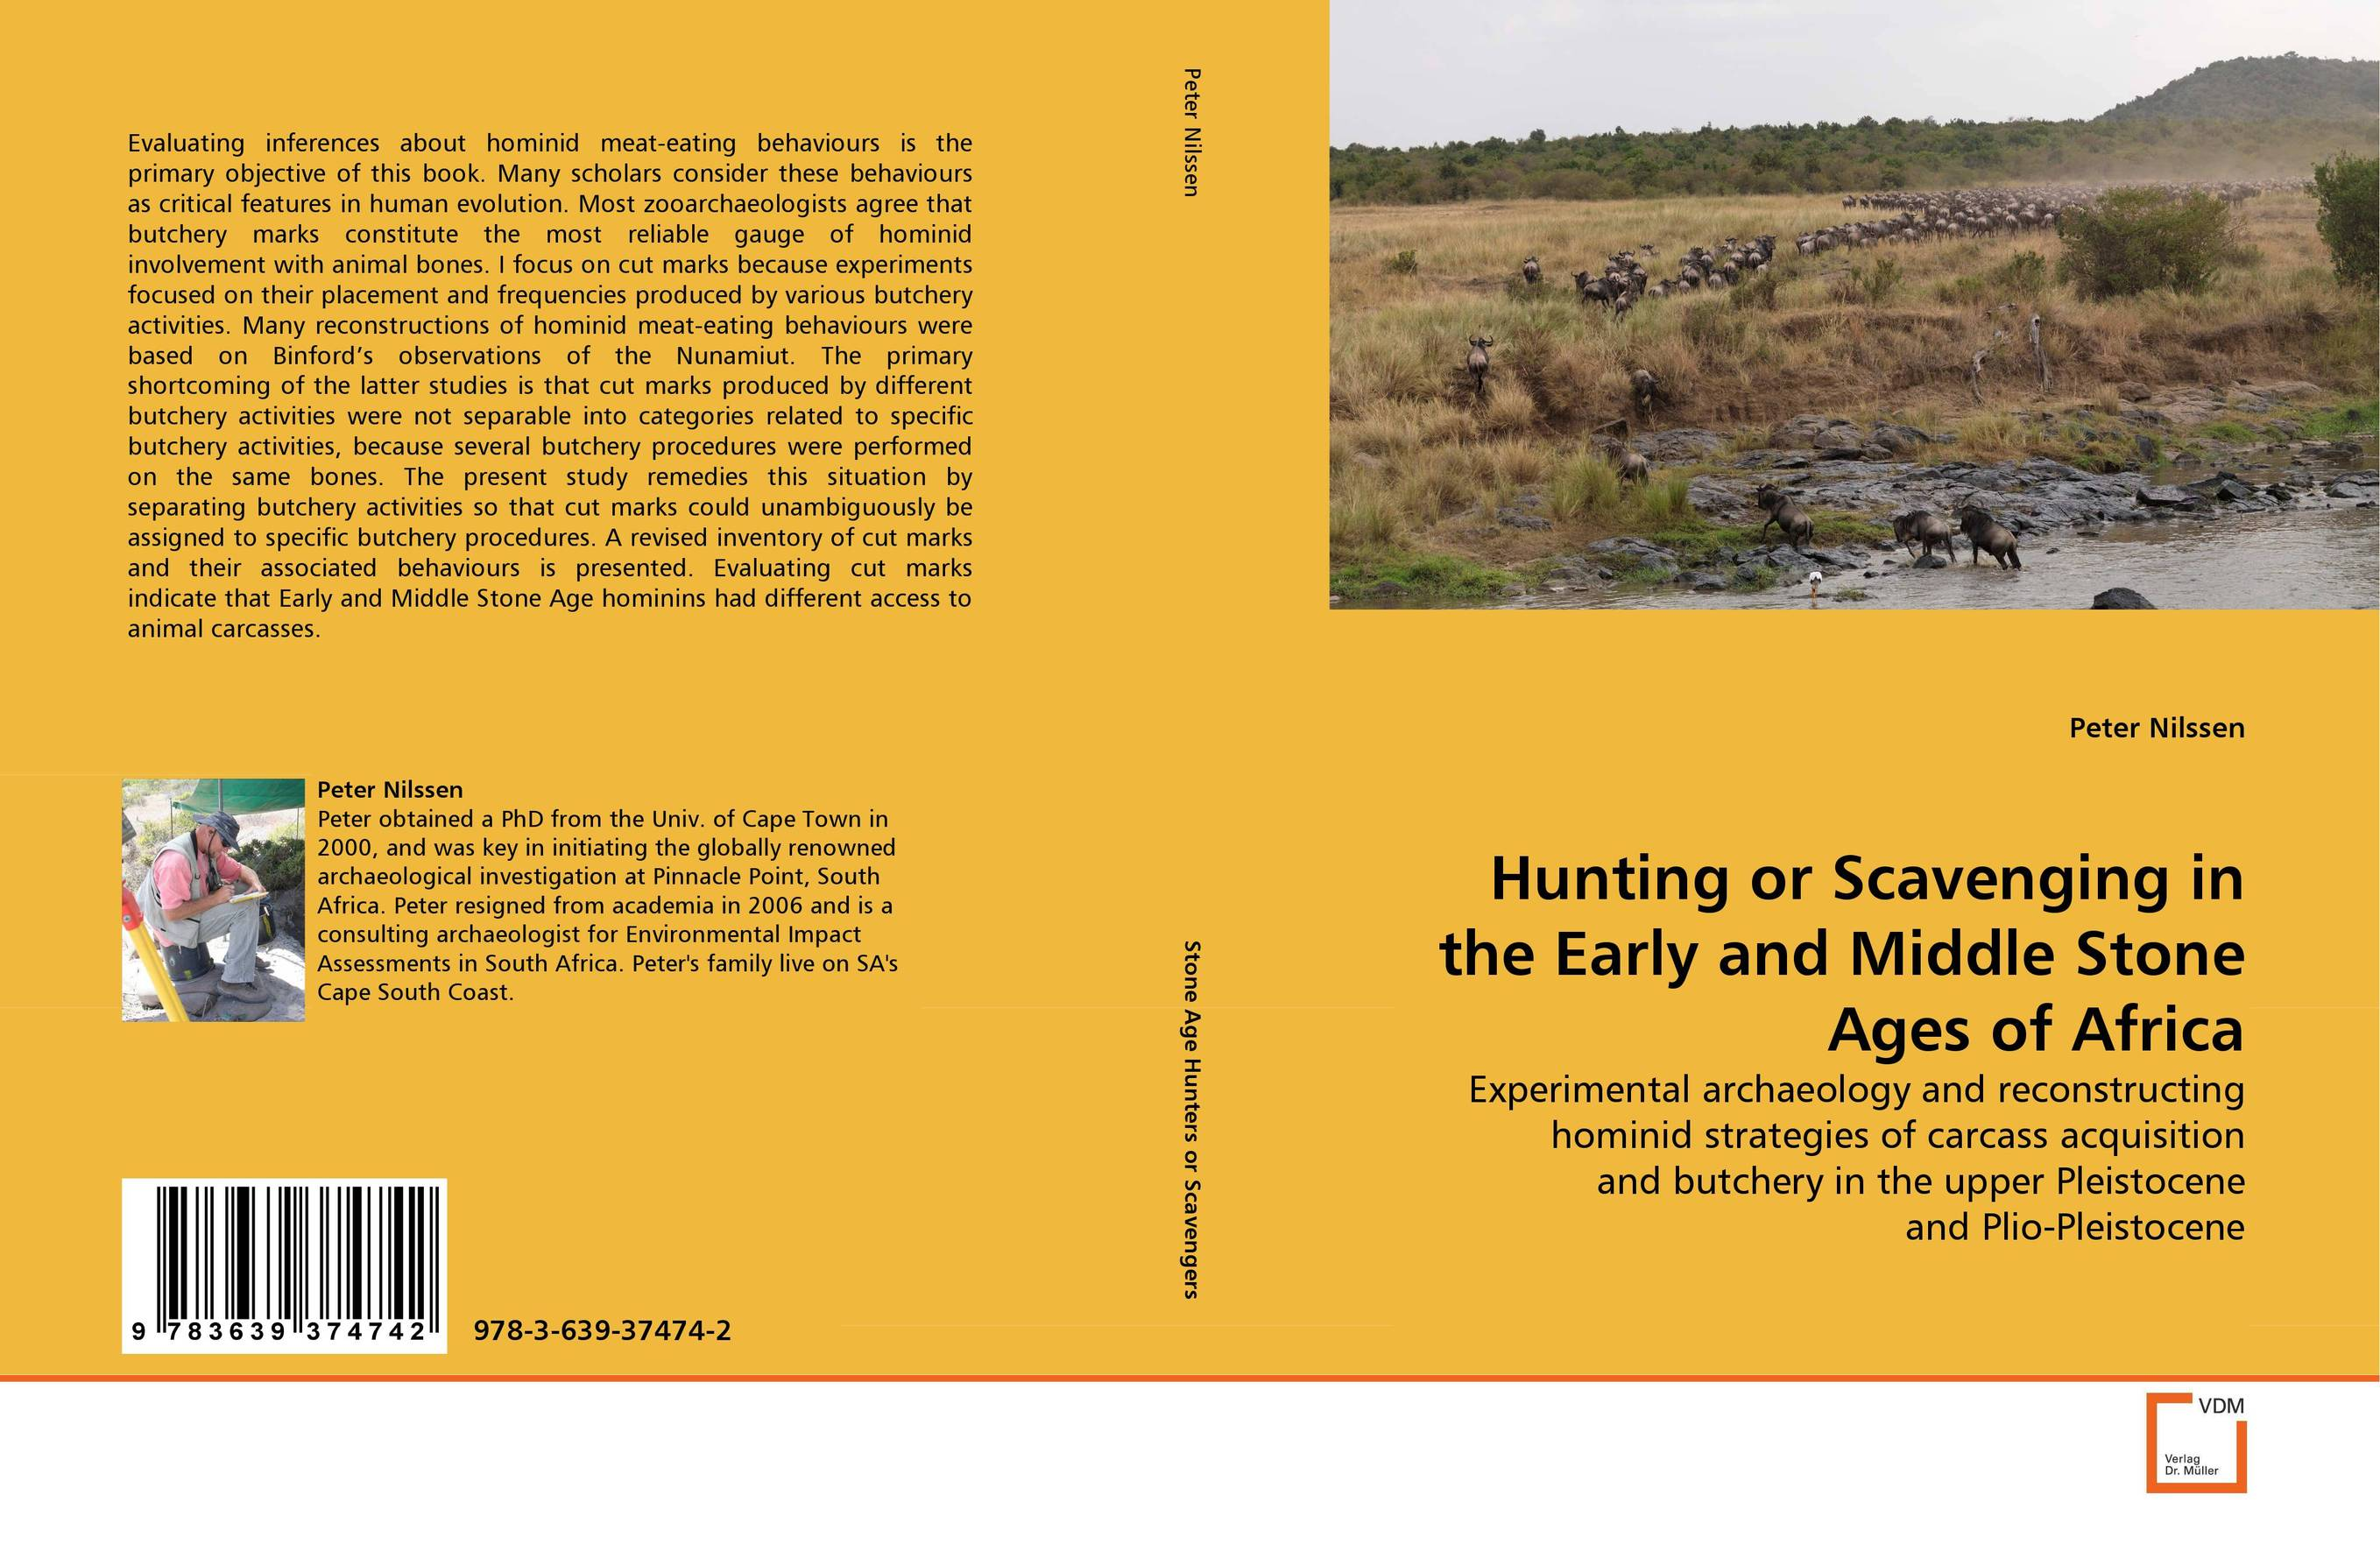 Hunting or Scavenging in the Early and Middle Stone Ages of Africa neuroethological studies on the scorpion's circadian activities